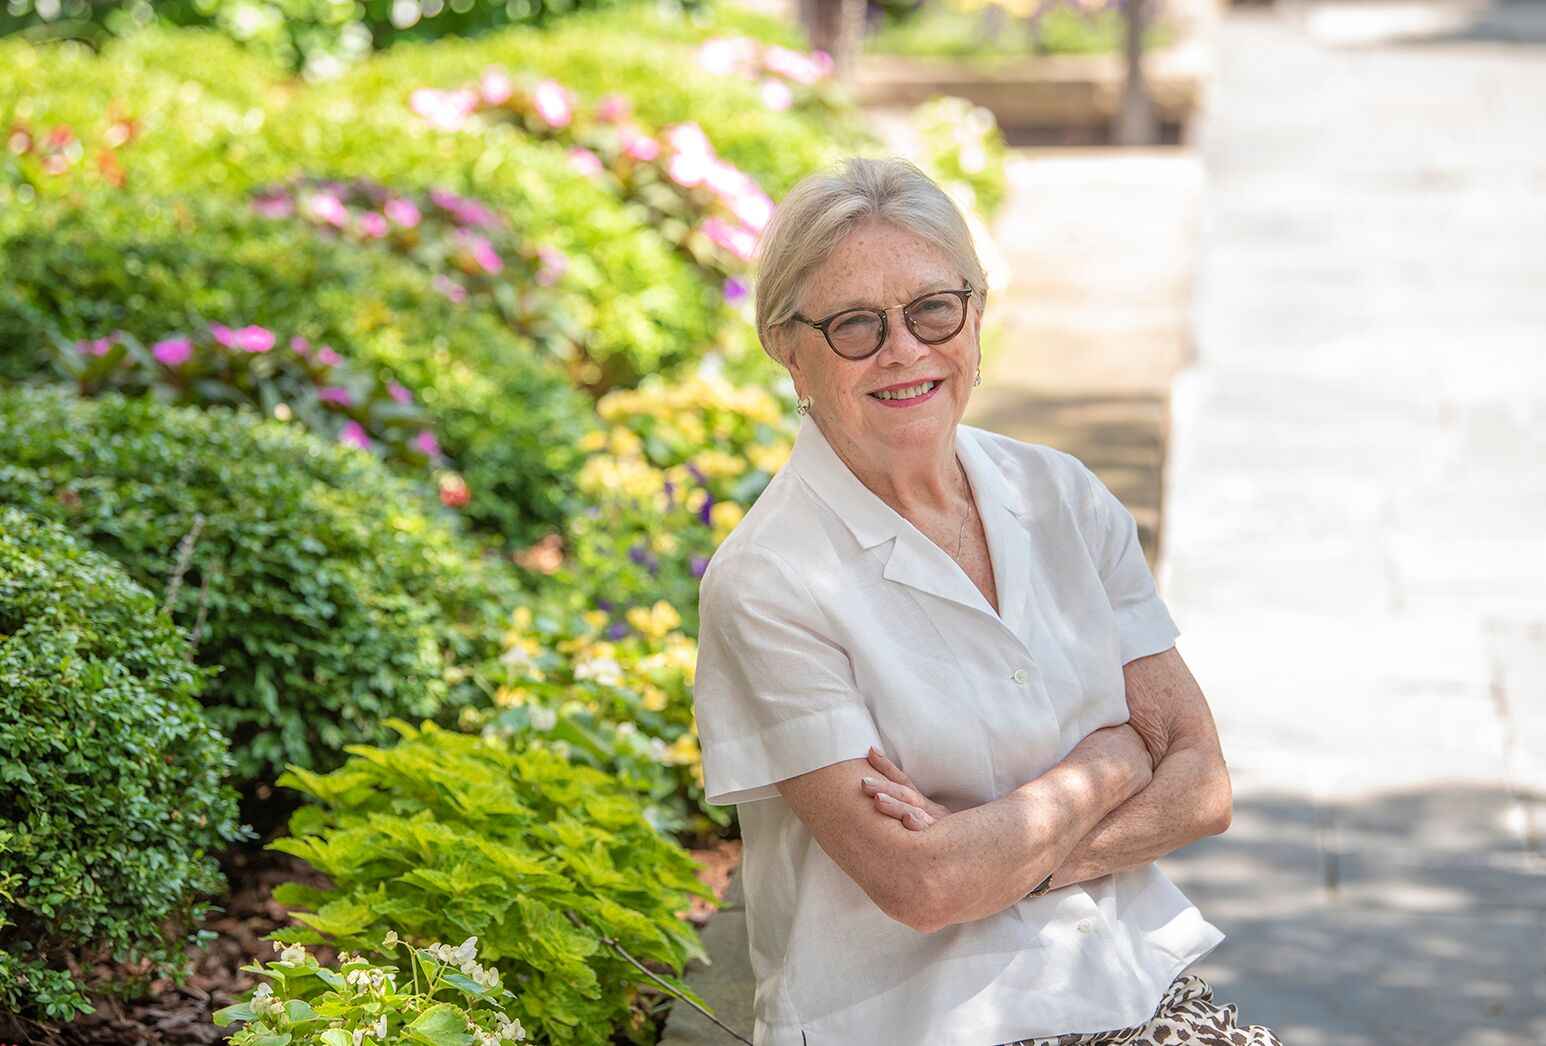 Woman in a white blouse and black-frame glasses in a garden.